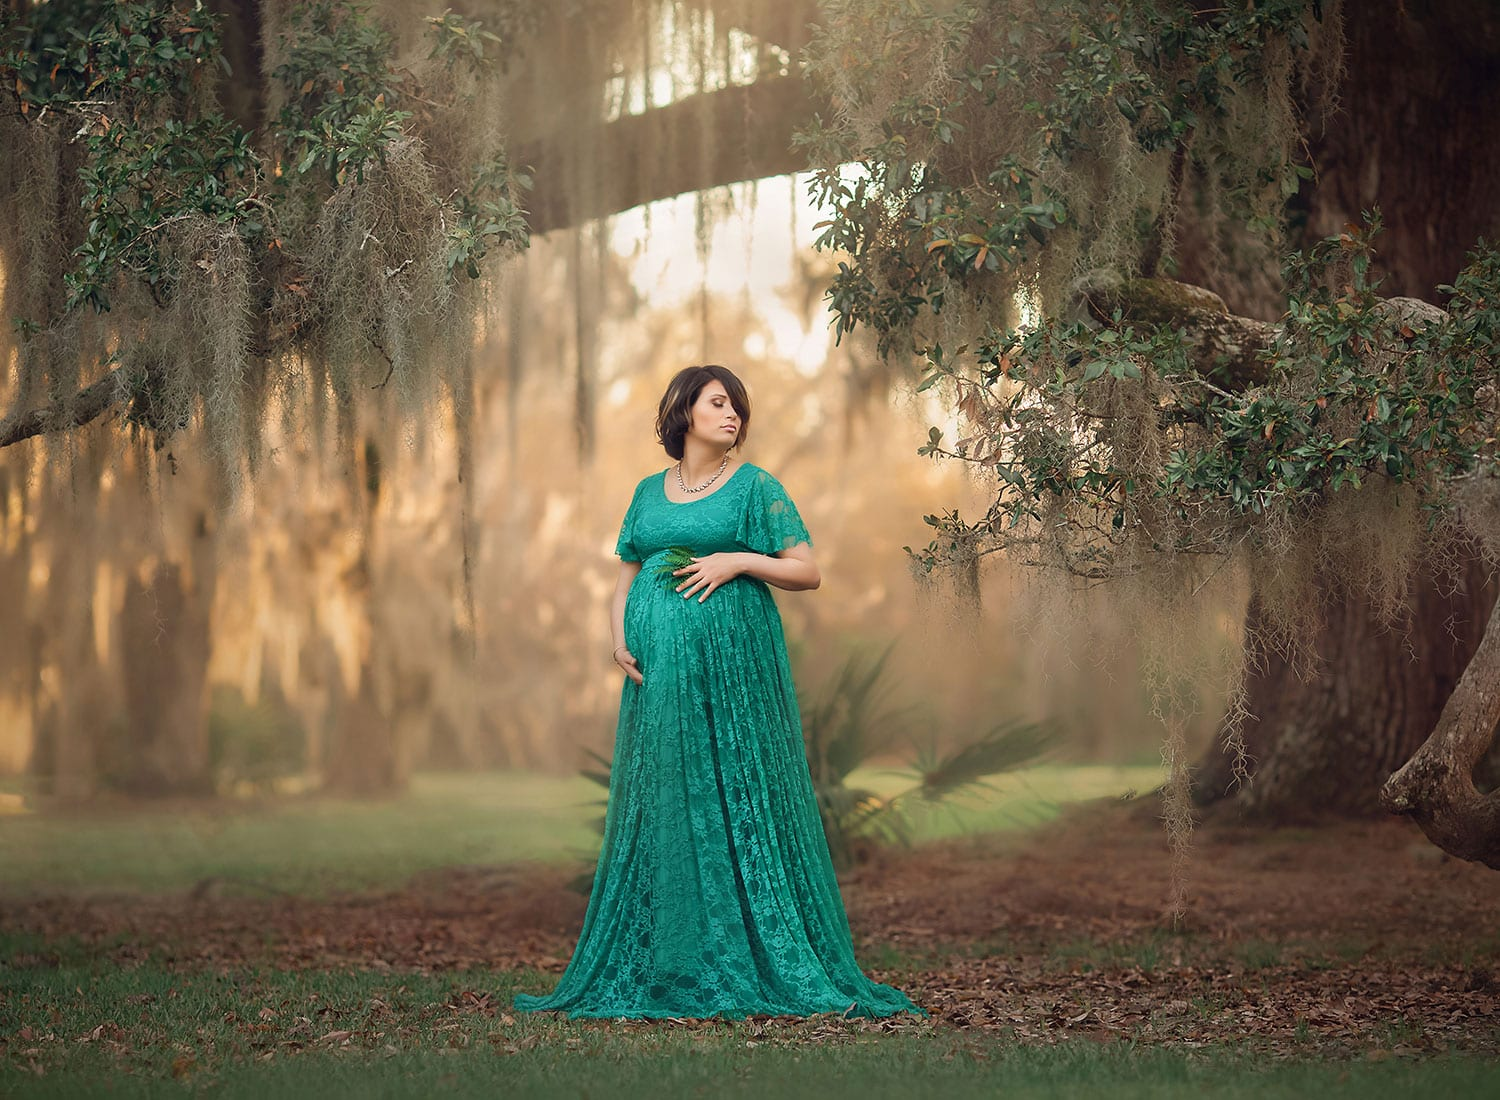 Fine Art maternity photo of expecting mother in teal dress at sunset